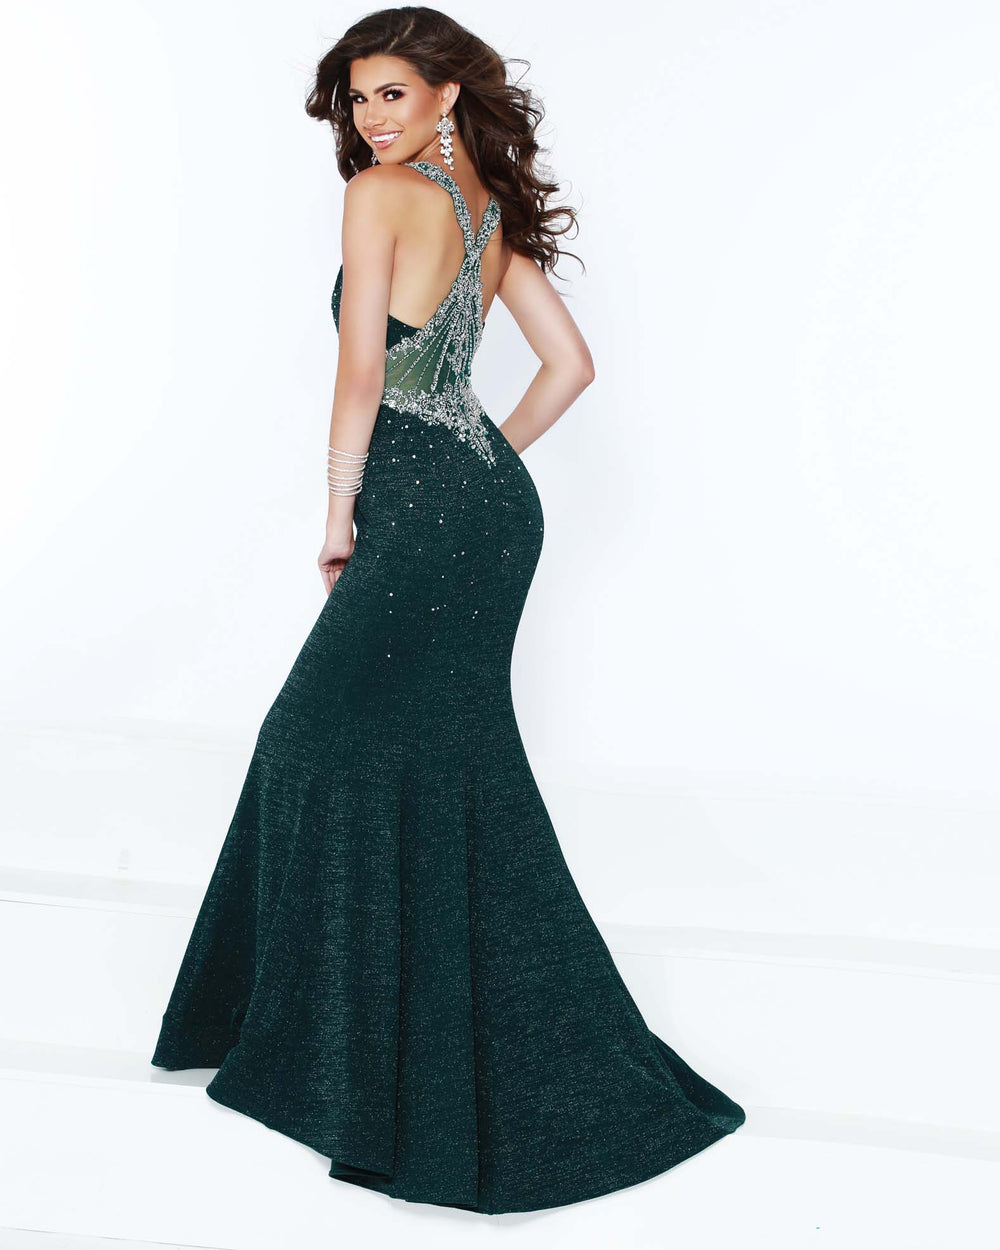 2Cute 91516 Deep Neckline Long Fitted Prom Dress